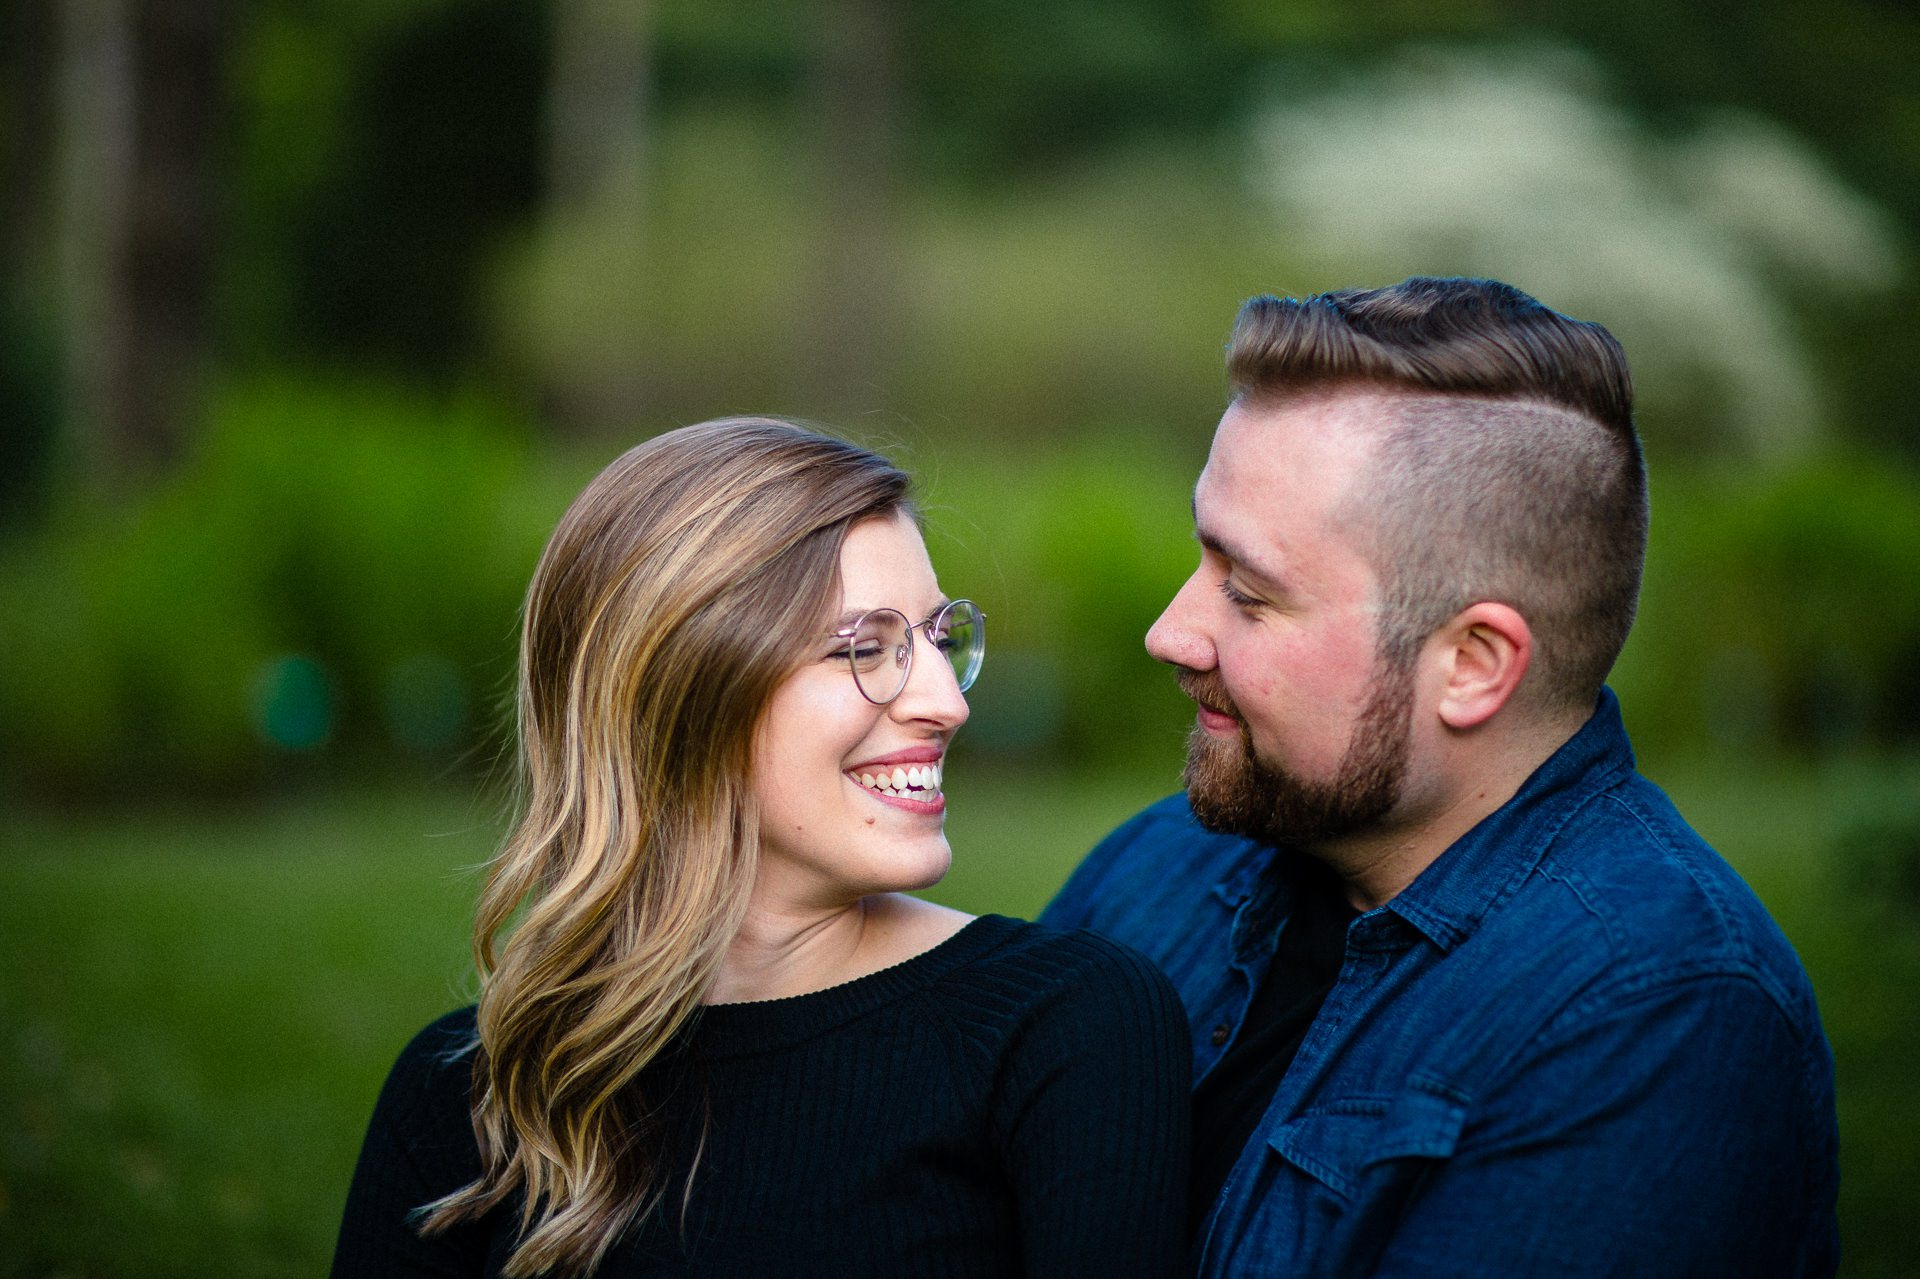 Spring Cleveland Botanical Gardens Engagement Photos 10.jpg